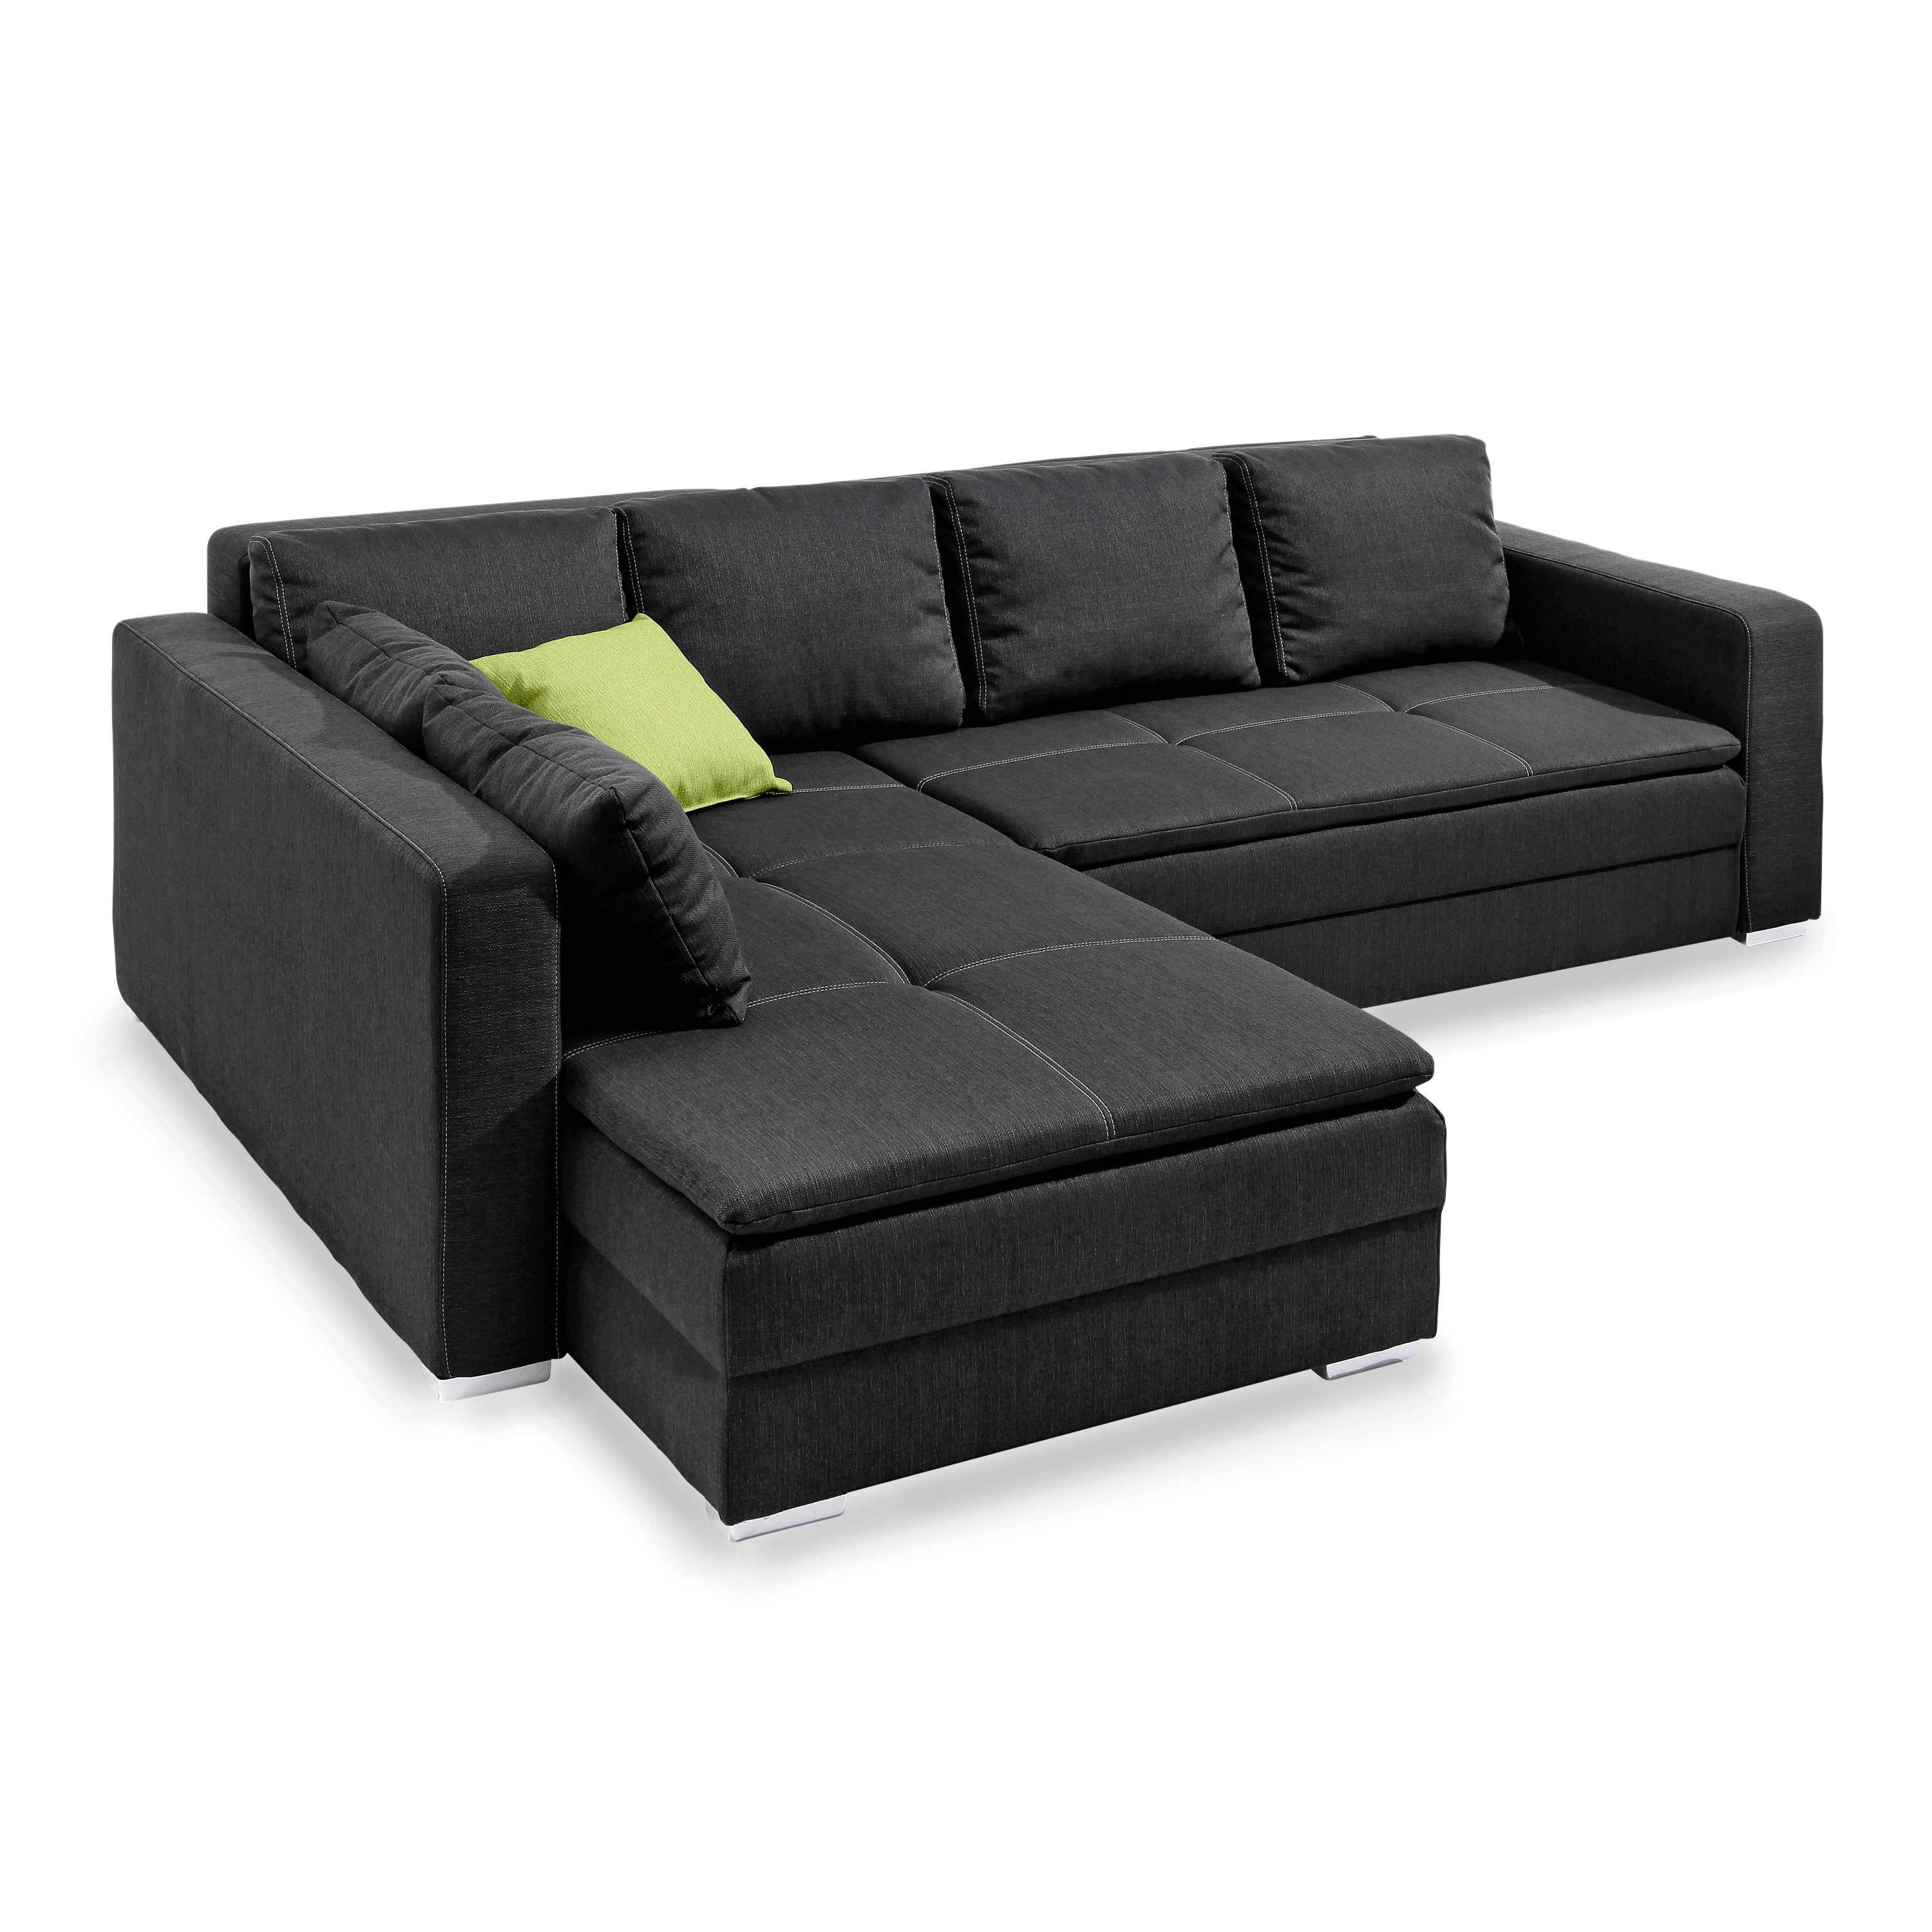 ecksofa domino anthrazit stoff online kaufen bei woonio. Black Bedroom Furniture Sets. Home Design Ideas